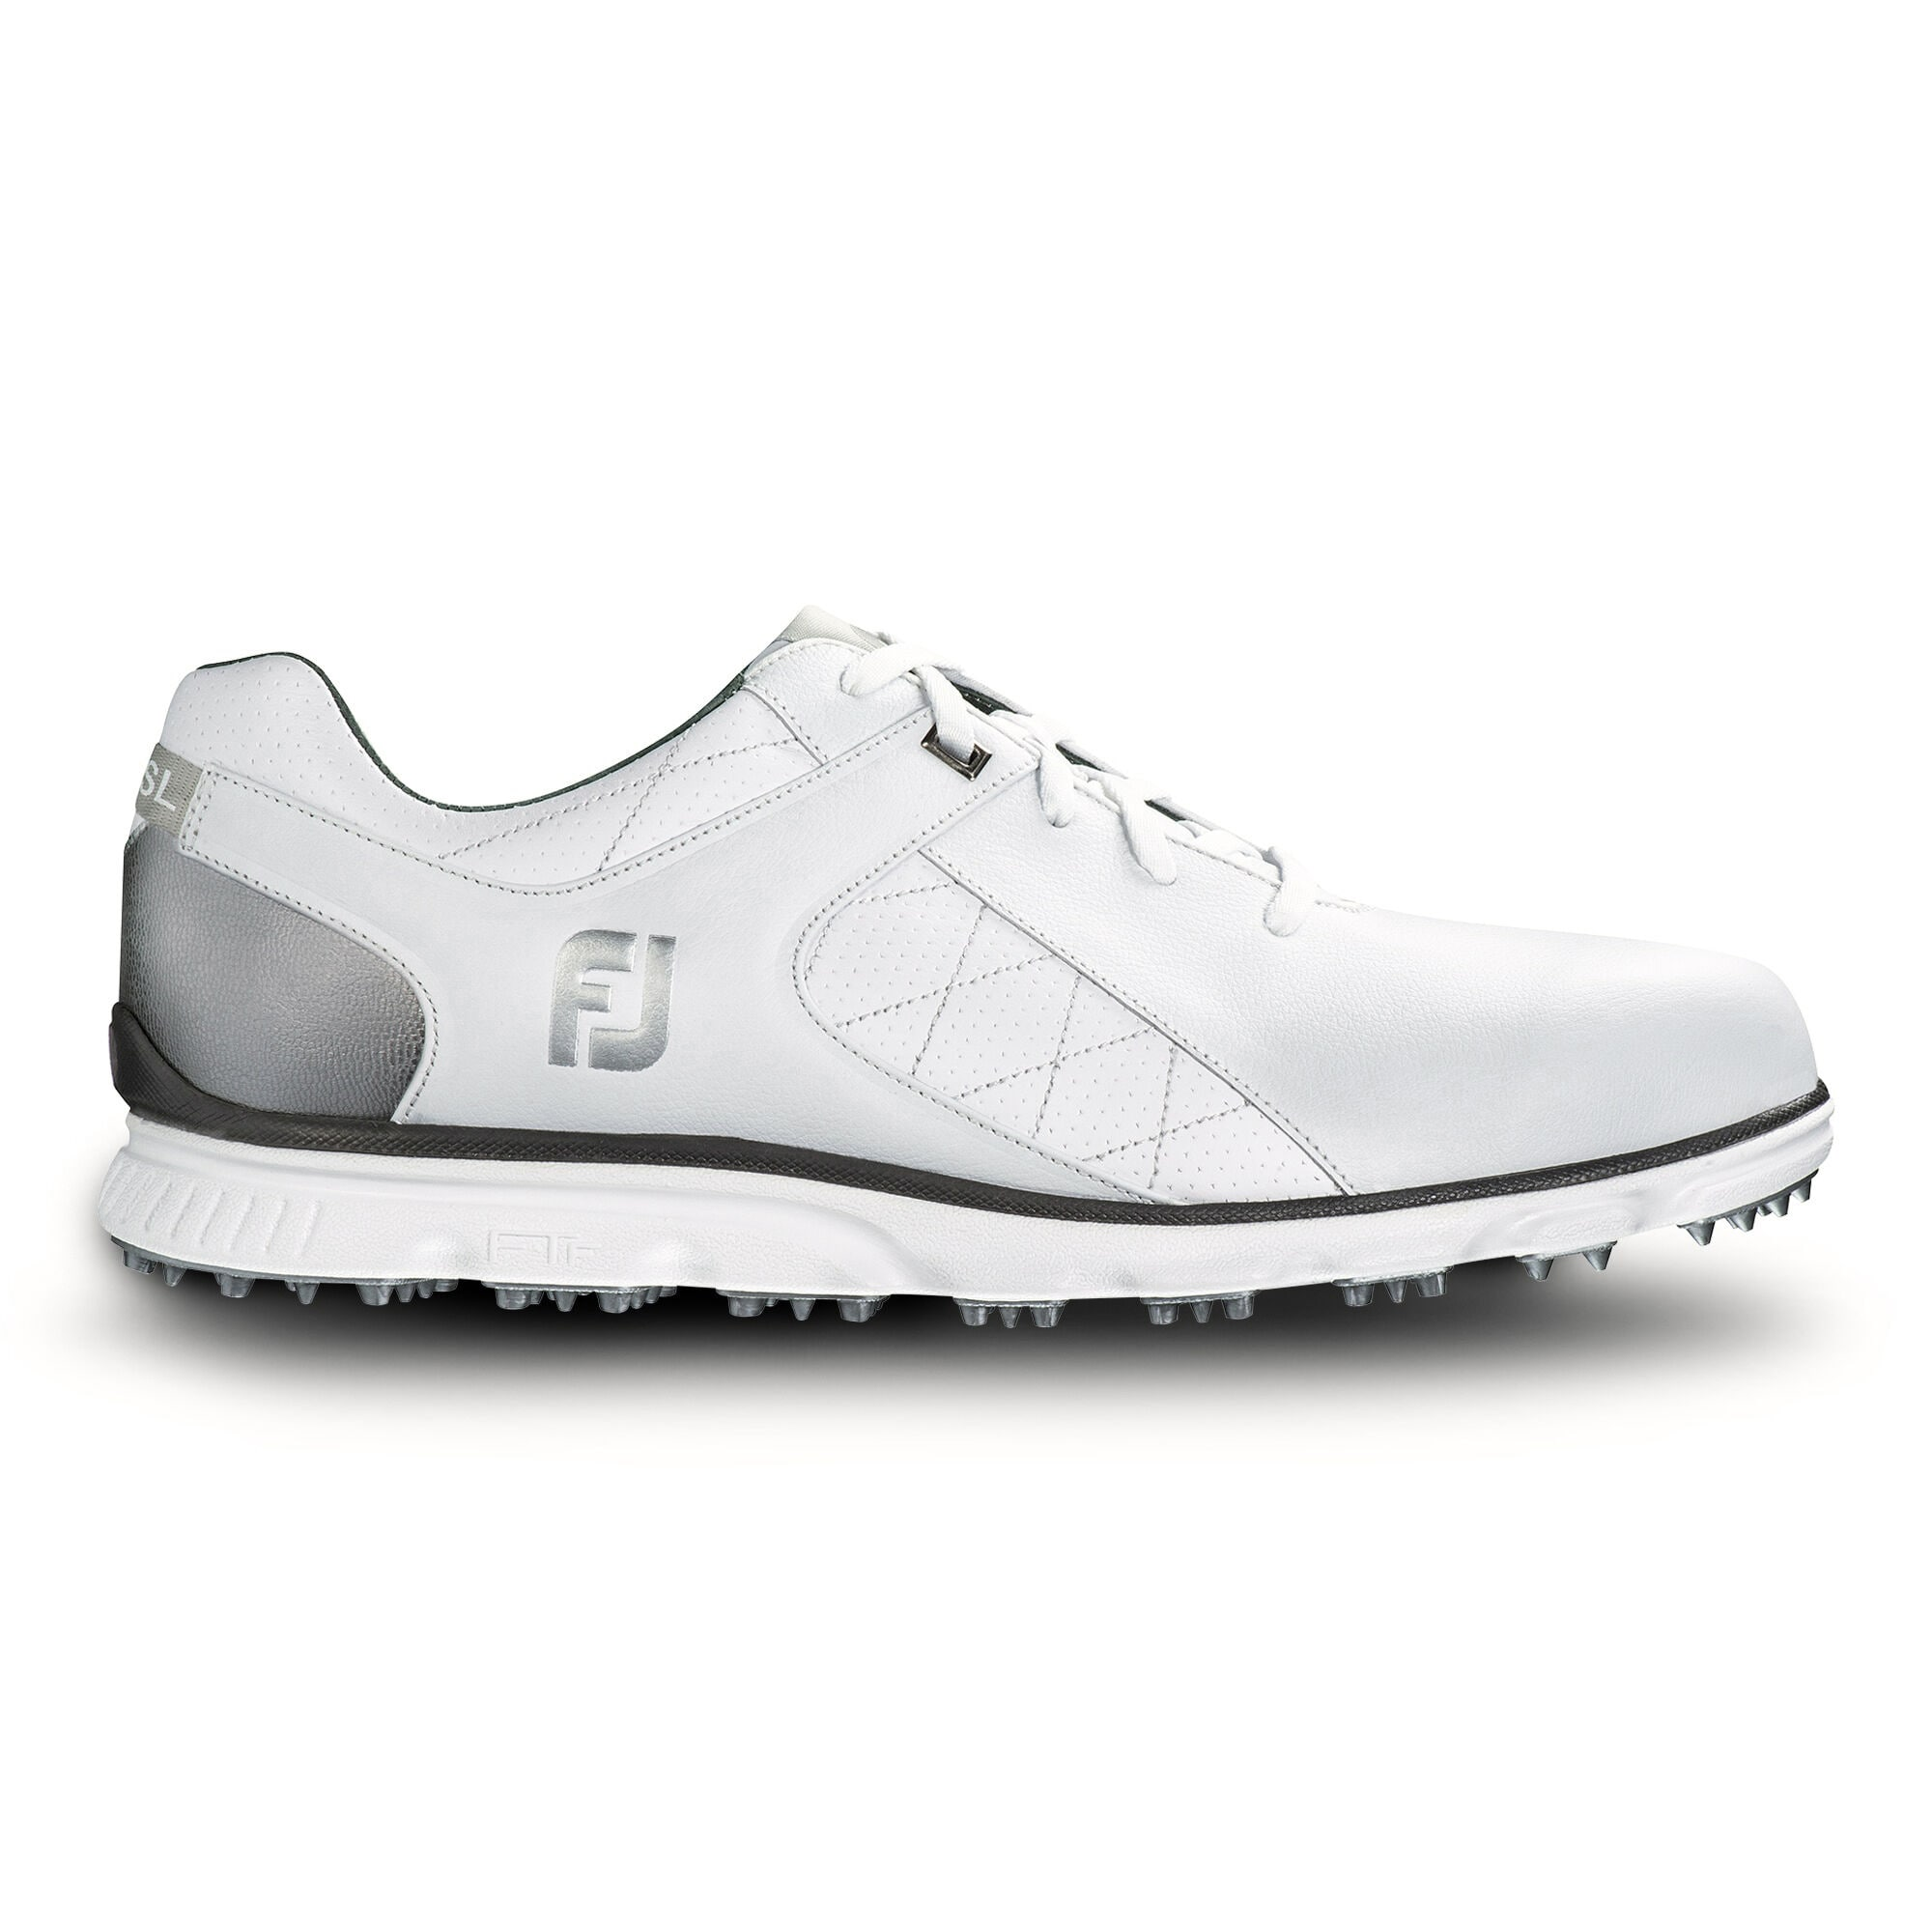 Best Waterproof golf shoes 2019 Mens and Women's reviewed